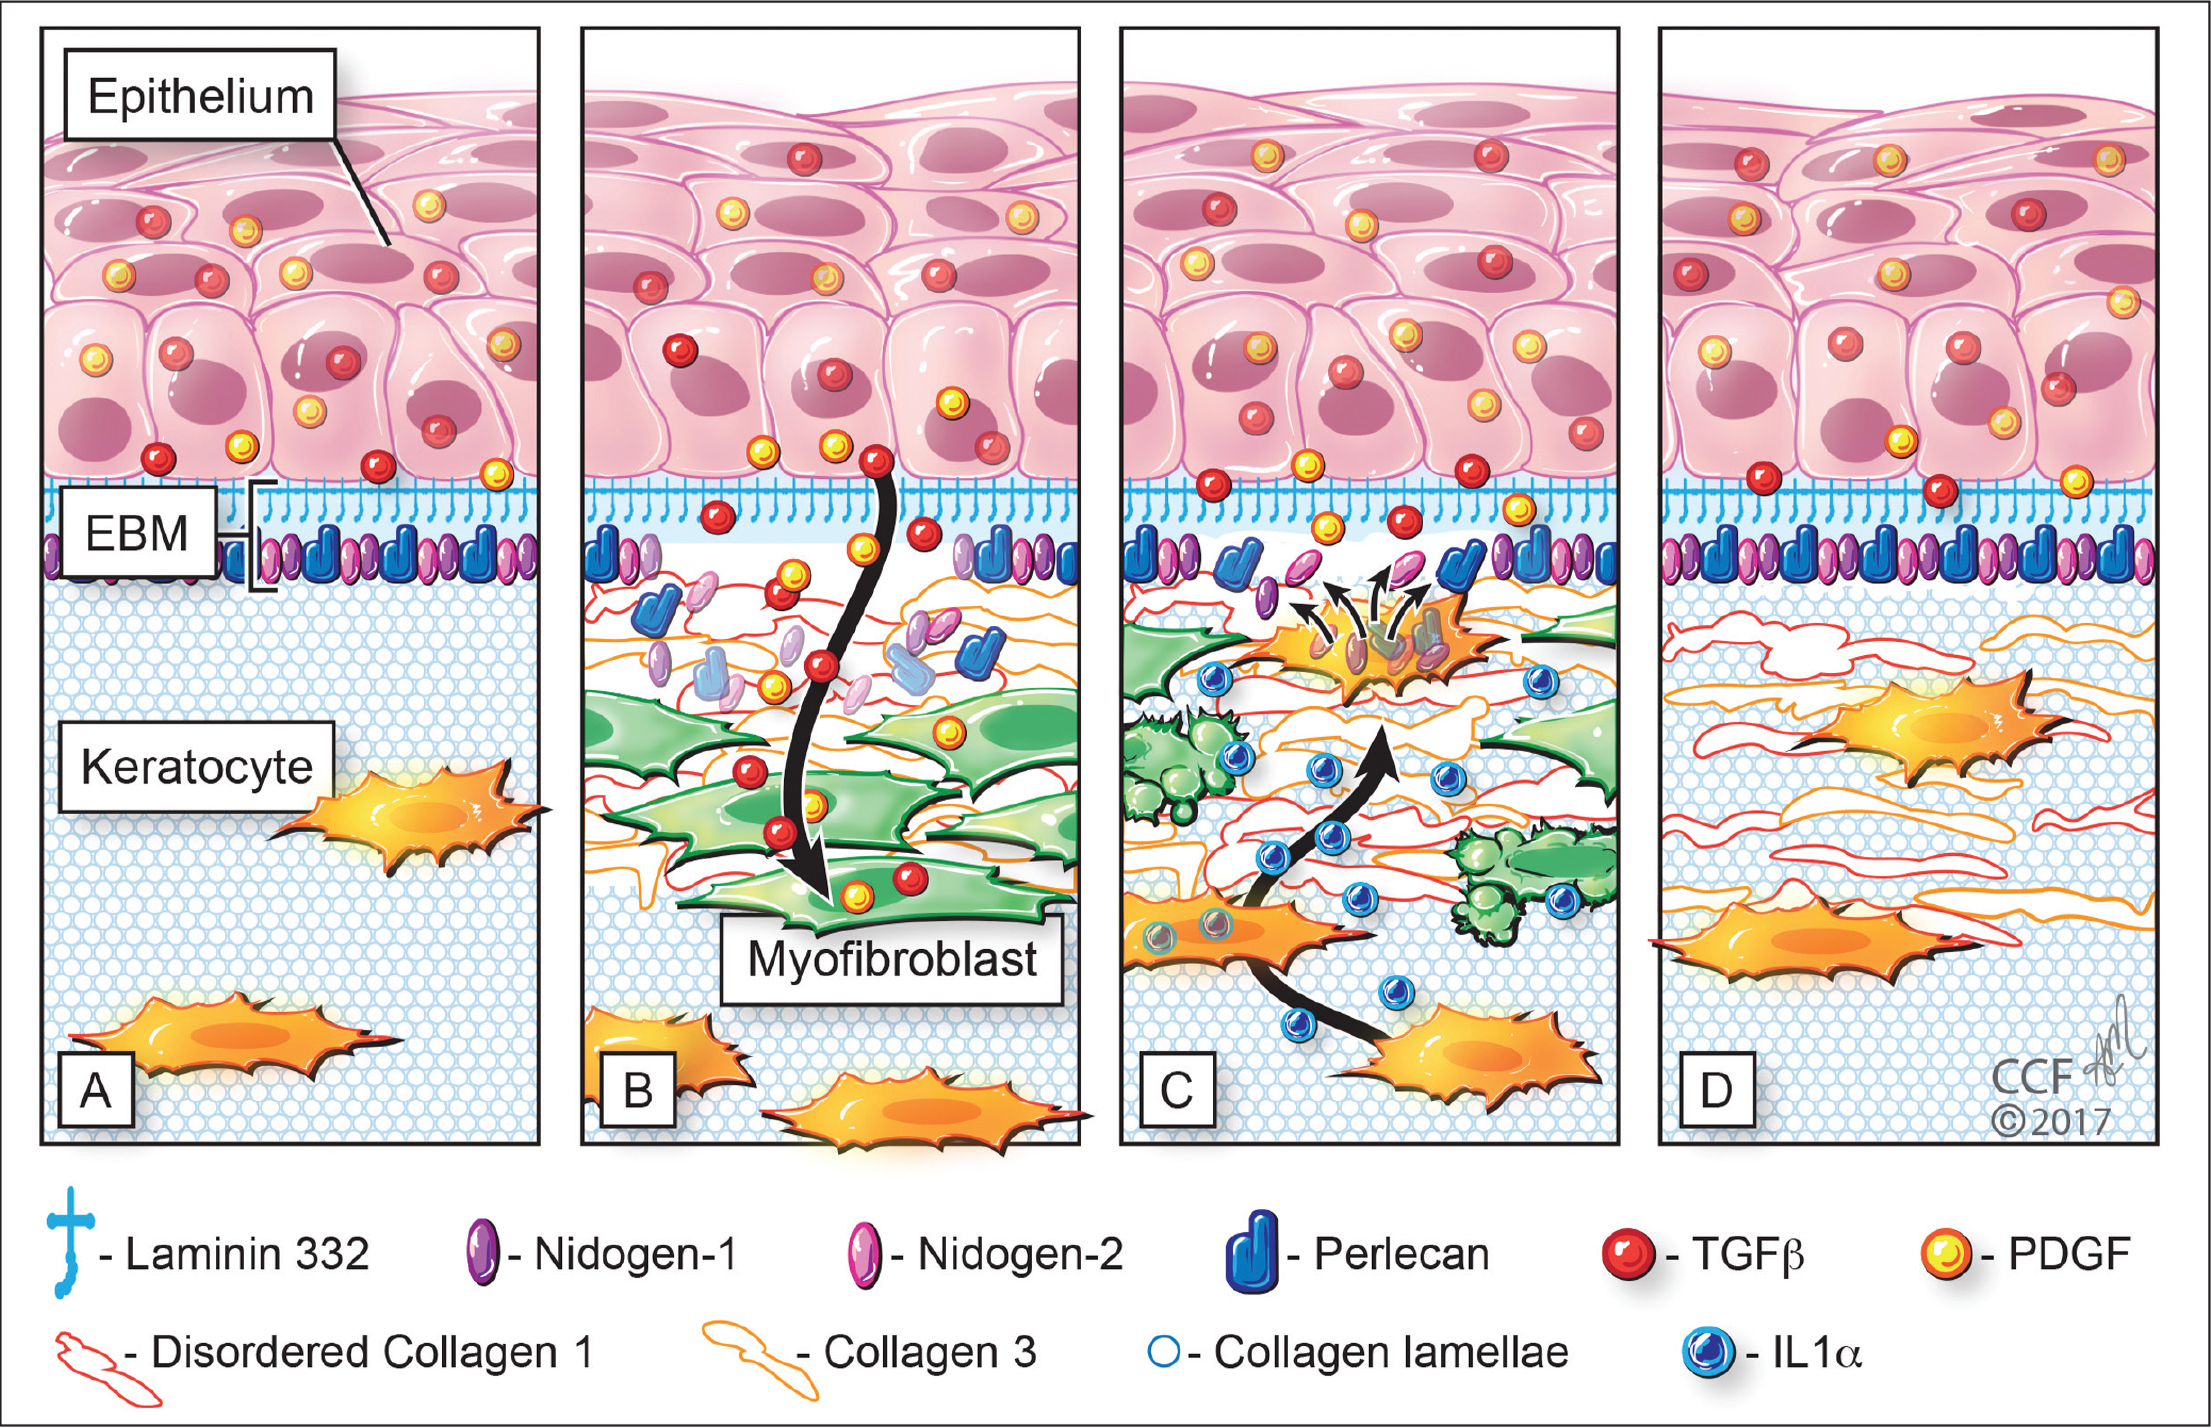 "Schematic illustration showing injury to the corneal epithelial basement membrane (EBM) and defective regeneration leading to myofibroblast development and fibrosis, followed by keratocyte contributions to regeneration of the EBM and removal of fibrotic extracellular matrix produced by myofibroblasts. (A) The normal unwounded cornea has intact EBM composed of laminin 332, nidogen-1, nidogen-2, perlecan, and other components not depicted—such as collagen type IV. The underlying stroma has keratocytes that maintain the highly organized stromal collagen lamellae and cornea transparency. Epithelium-derived transforming growth factor beta (TGF-β) and platelet-derived growth factor (PDGF) are blocked from penetration into the underlying stroma by binding to normal EBM components such as perlecan and collagen type IV. (B) After severe epithelial-stromal injuries, such as infections, trauma, and surgeries (eg, high correction photorefractive keratectomy), the epithelium and EBM are disrupted and activated TGF-β and PDGF penetrate into the underlying stroma at sufficient concentrations to drive the development of mature myofibroblasts from keratocyte-derived and bone marrow–derived (fibrocyte) precursor cells. Myofibroblasts are also opaque (relative to keratocytes) and secrete large amounts of disordered collagen type I, collagen type III, and other matrix materials that disrupt the organization of the normal stromal lamellae to produce corneal scarring (fibrosis). (C) Over months to years following the initial injury, keratocytes penetrate the anterior stromal myofibroblast layer and facilitate EBM regeneration via the production of laminins, nidogens, and perlecan in coordination with overlying epithelial cells that also produce these and other EBM components. The working hypothesis is that once the nascent laminin-332 layer is produced by the epithelium, more posterior EBM components must come from keratocytes to fully regenerate the normal EBM. This causes a decrease in TGF-β and PDGF penetration into the stroma from the epithelium and triggers myofibroblast apoptosis. This EBM regeneration process begins in a random spotty distribution within the stromal opacity to produce clear areas within the scarring called ""lacunae"" that can enlarge and coalesce over weeks to months to fully restore stromal transparency. (D) In many corneas, depending on the type and severity of the initial injury, all myofibroblasts disappear and keratocytes fully repopulate the stroma and reabsorb the remaining disorganized extracellular matrix materials secreted by the myofibroblasts to completely restore the normal morphology of the collagen lamellae and stromal transparency. IL1α = interleukin 1α. Reprinted with permission from Cleveland Clinic Center for Medical Art & Photography, ©2019. All rights reserved."